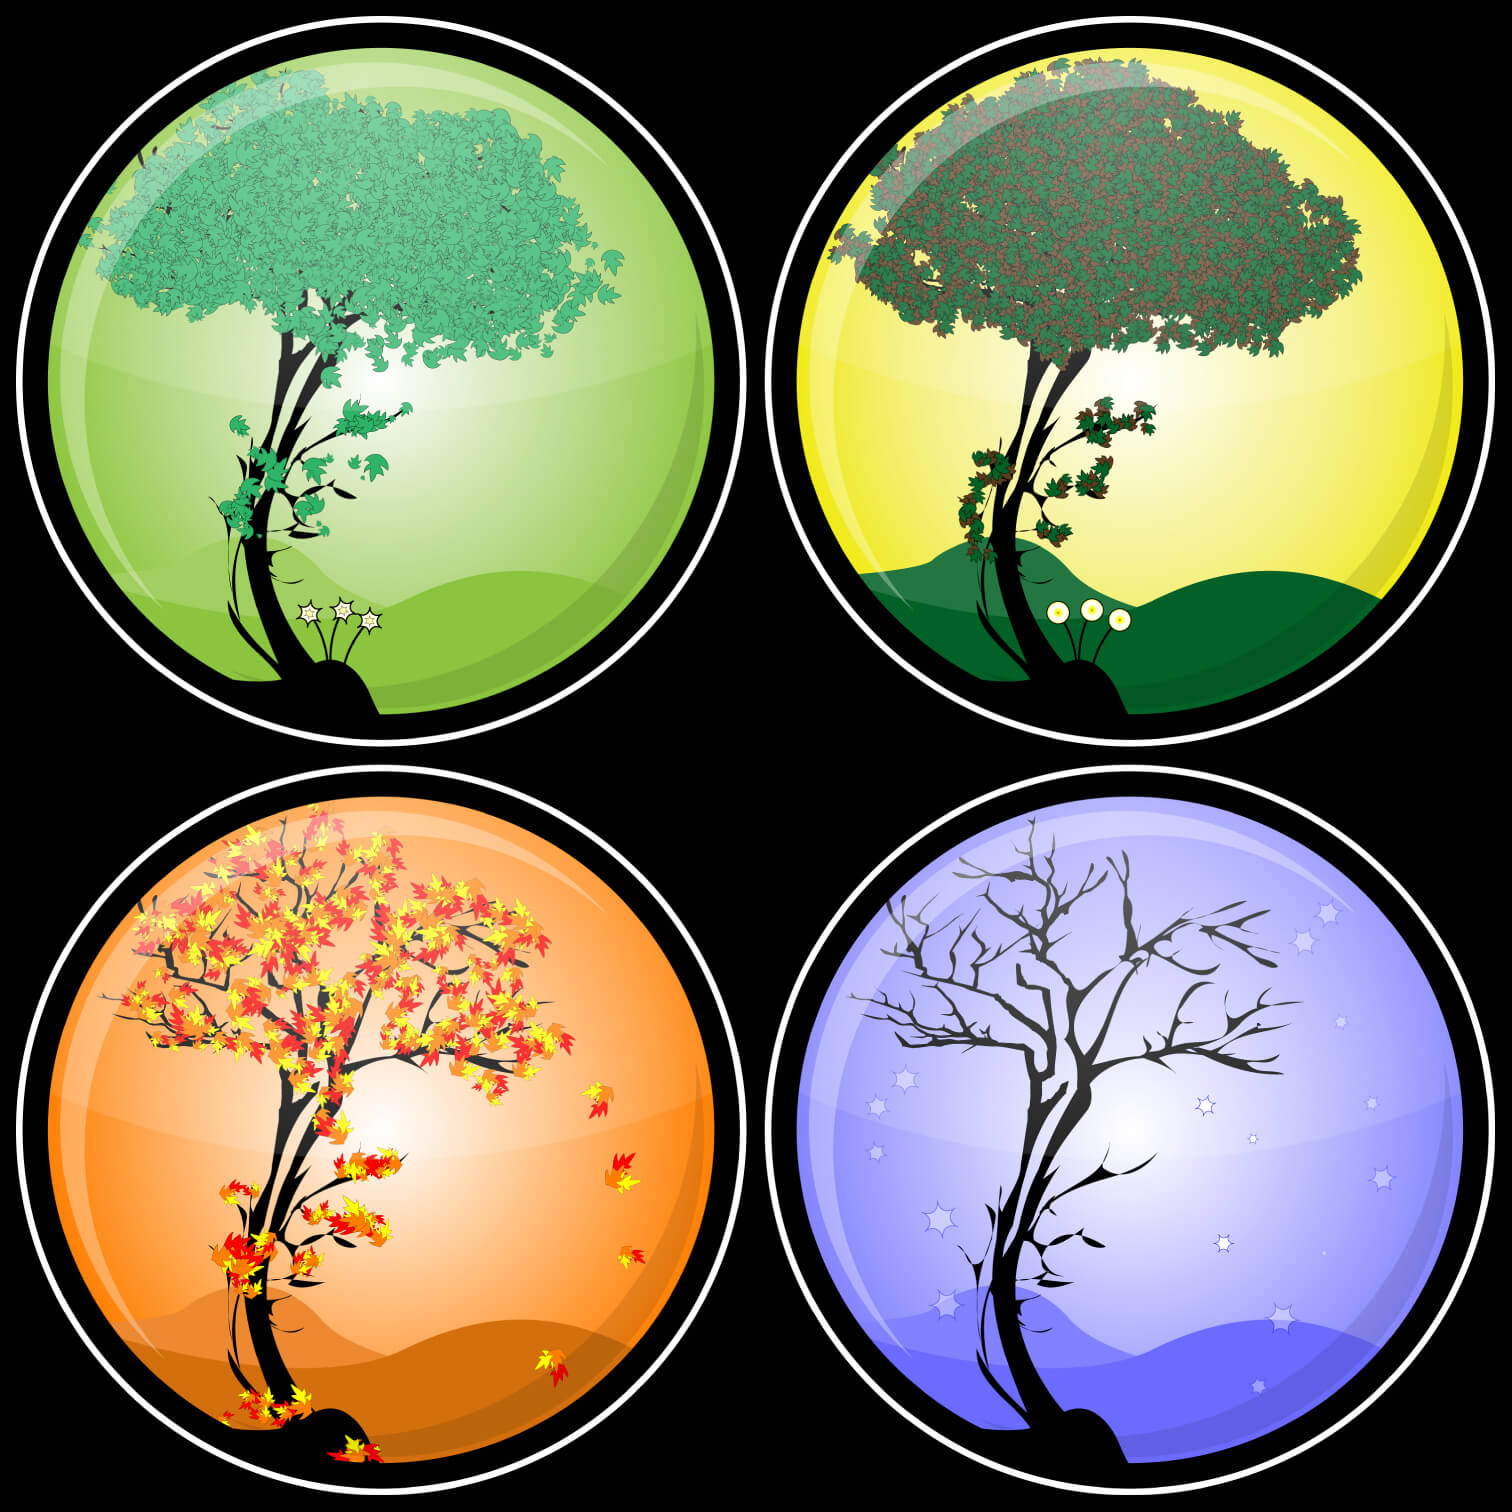 All about the Four Seasons Fun Earth Science Facts for Kids - the Four Seasons